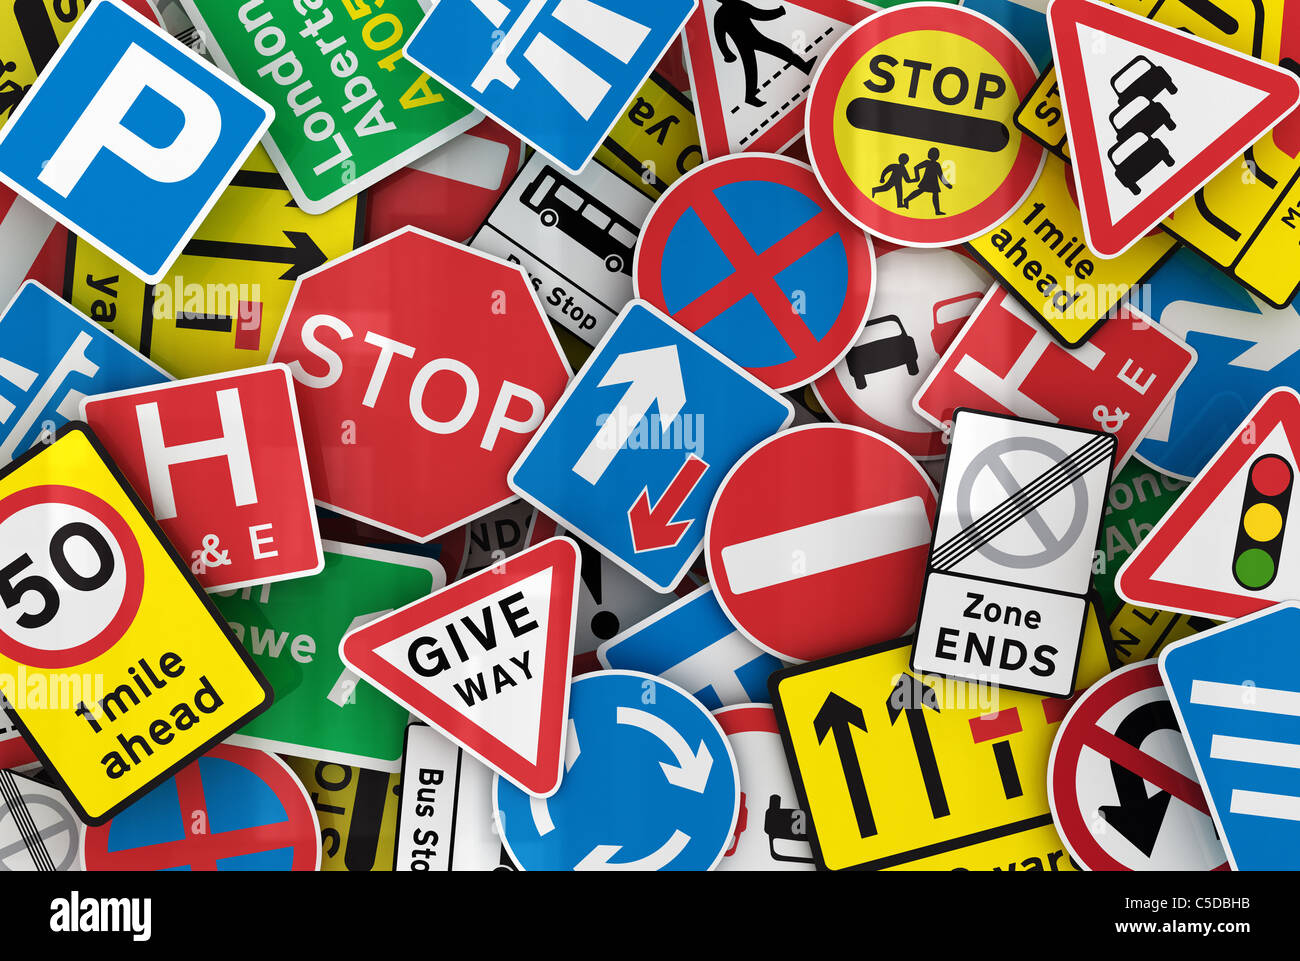 British road signs - Stock Image